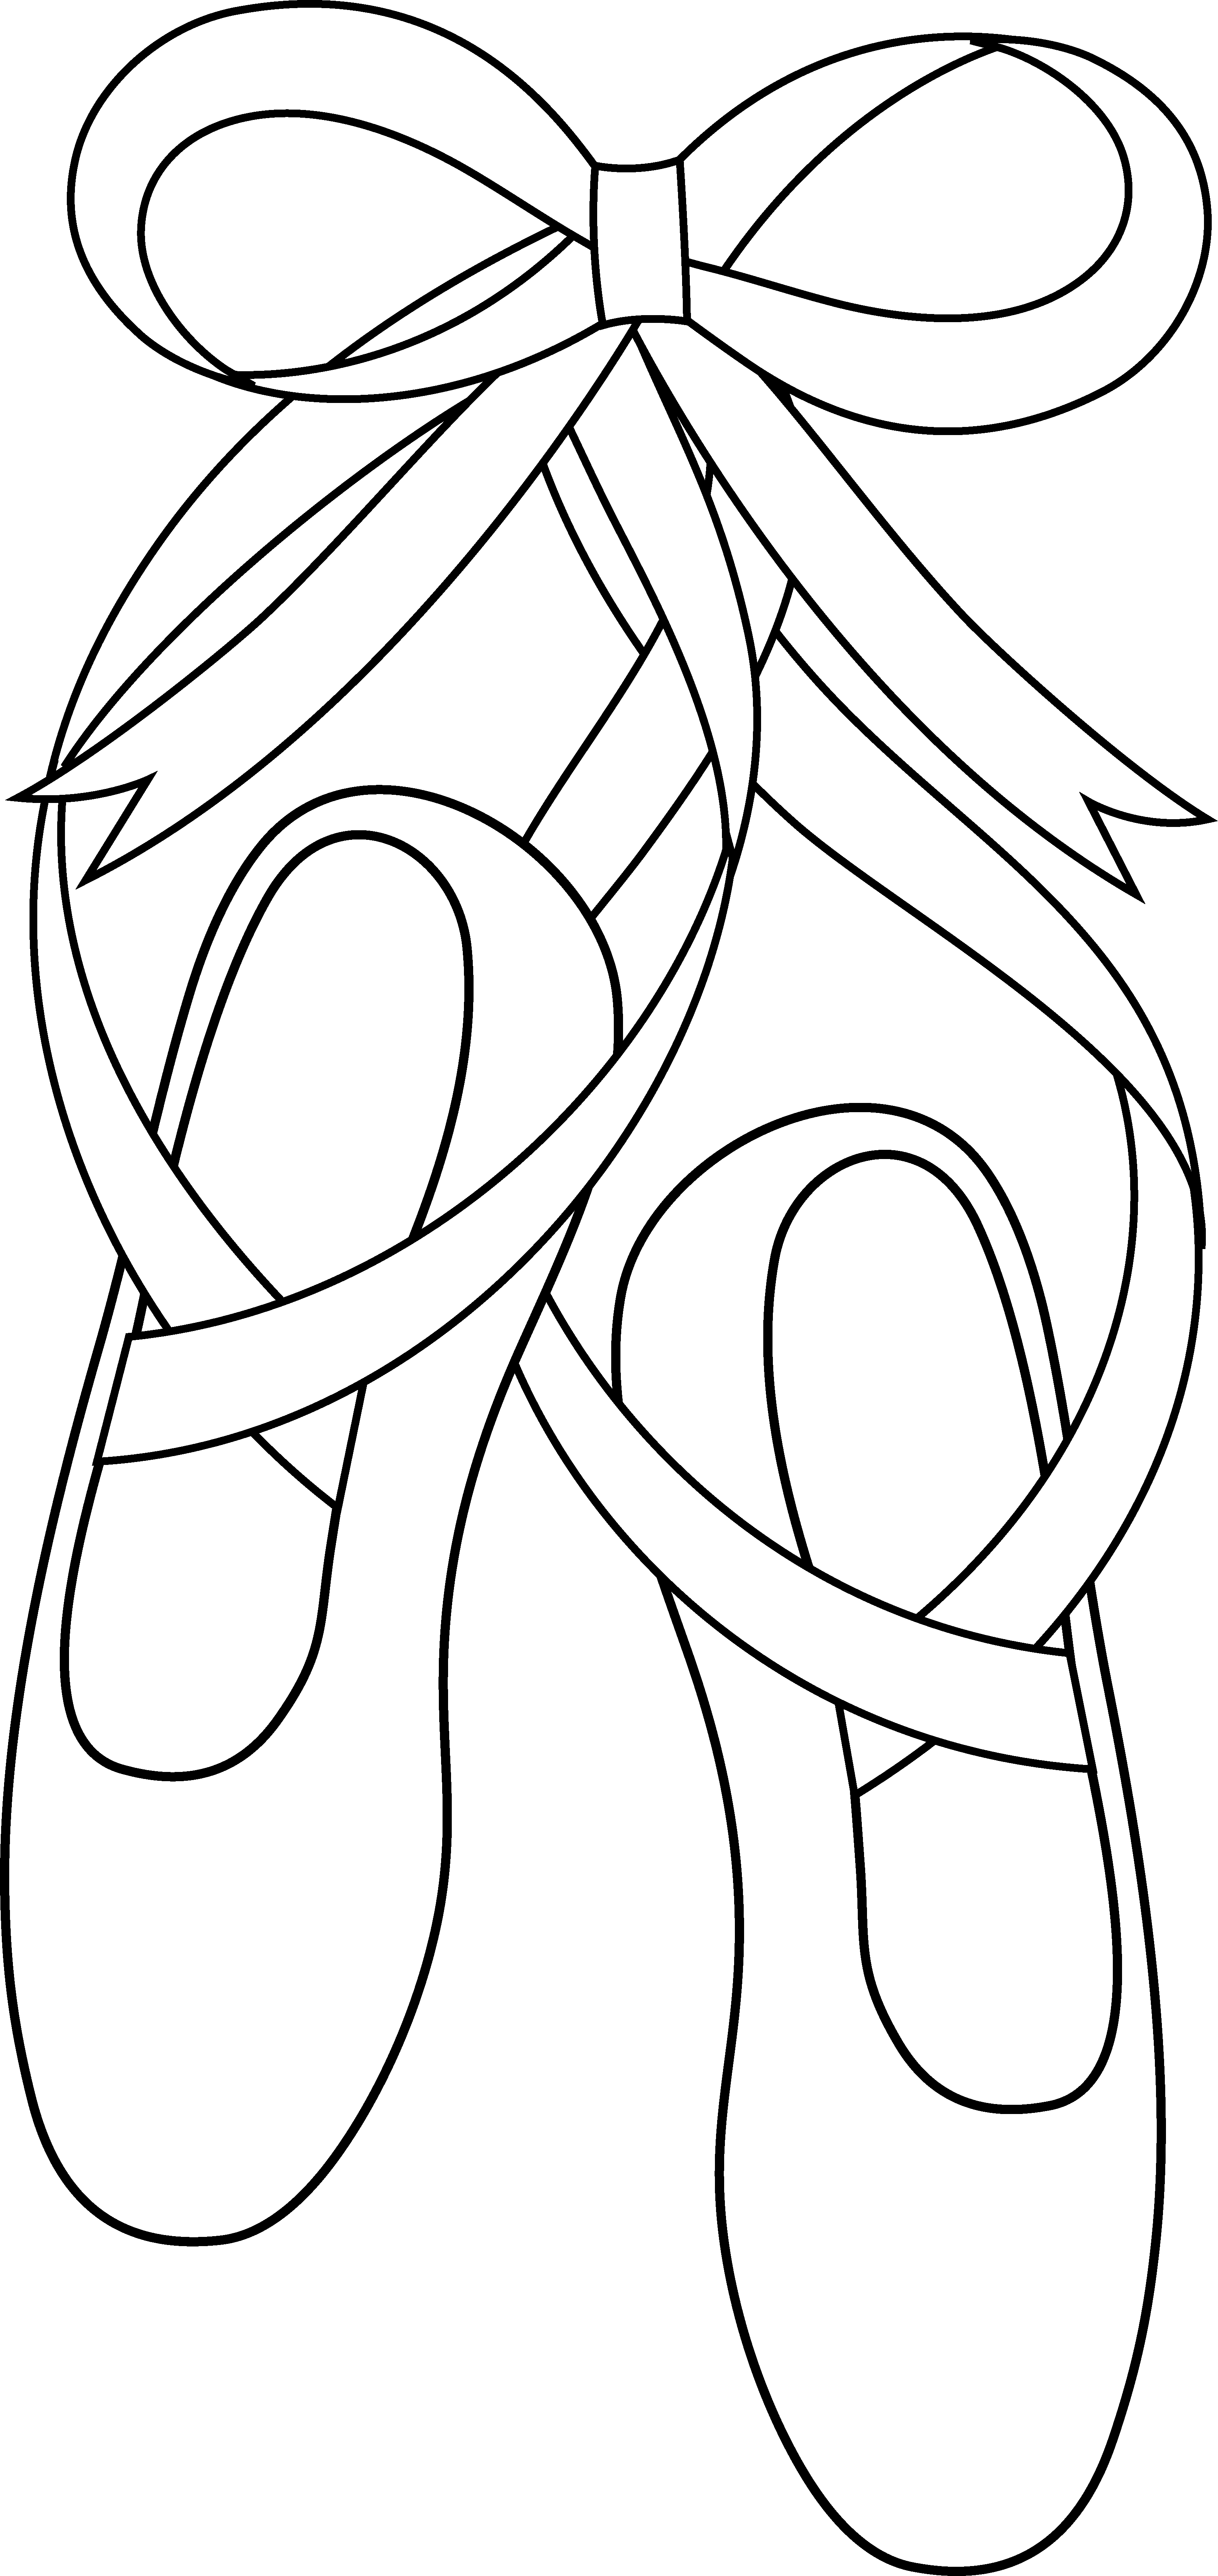 Ballet Shoes Coloring Pages Clipart Best Coloring Pages You Can Color On The Computer For Adults